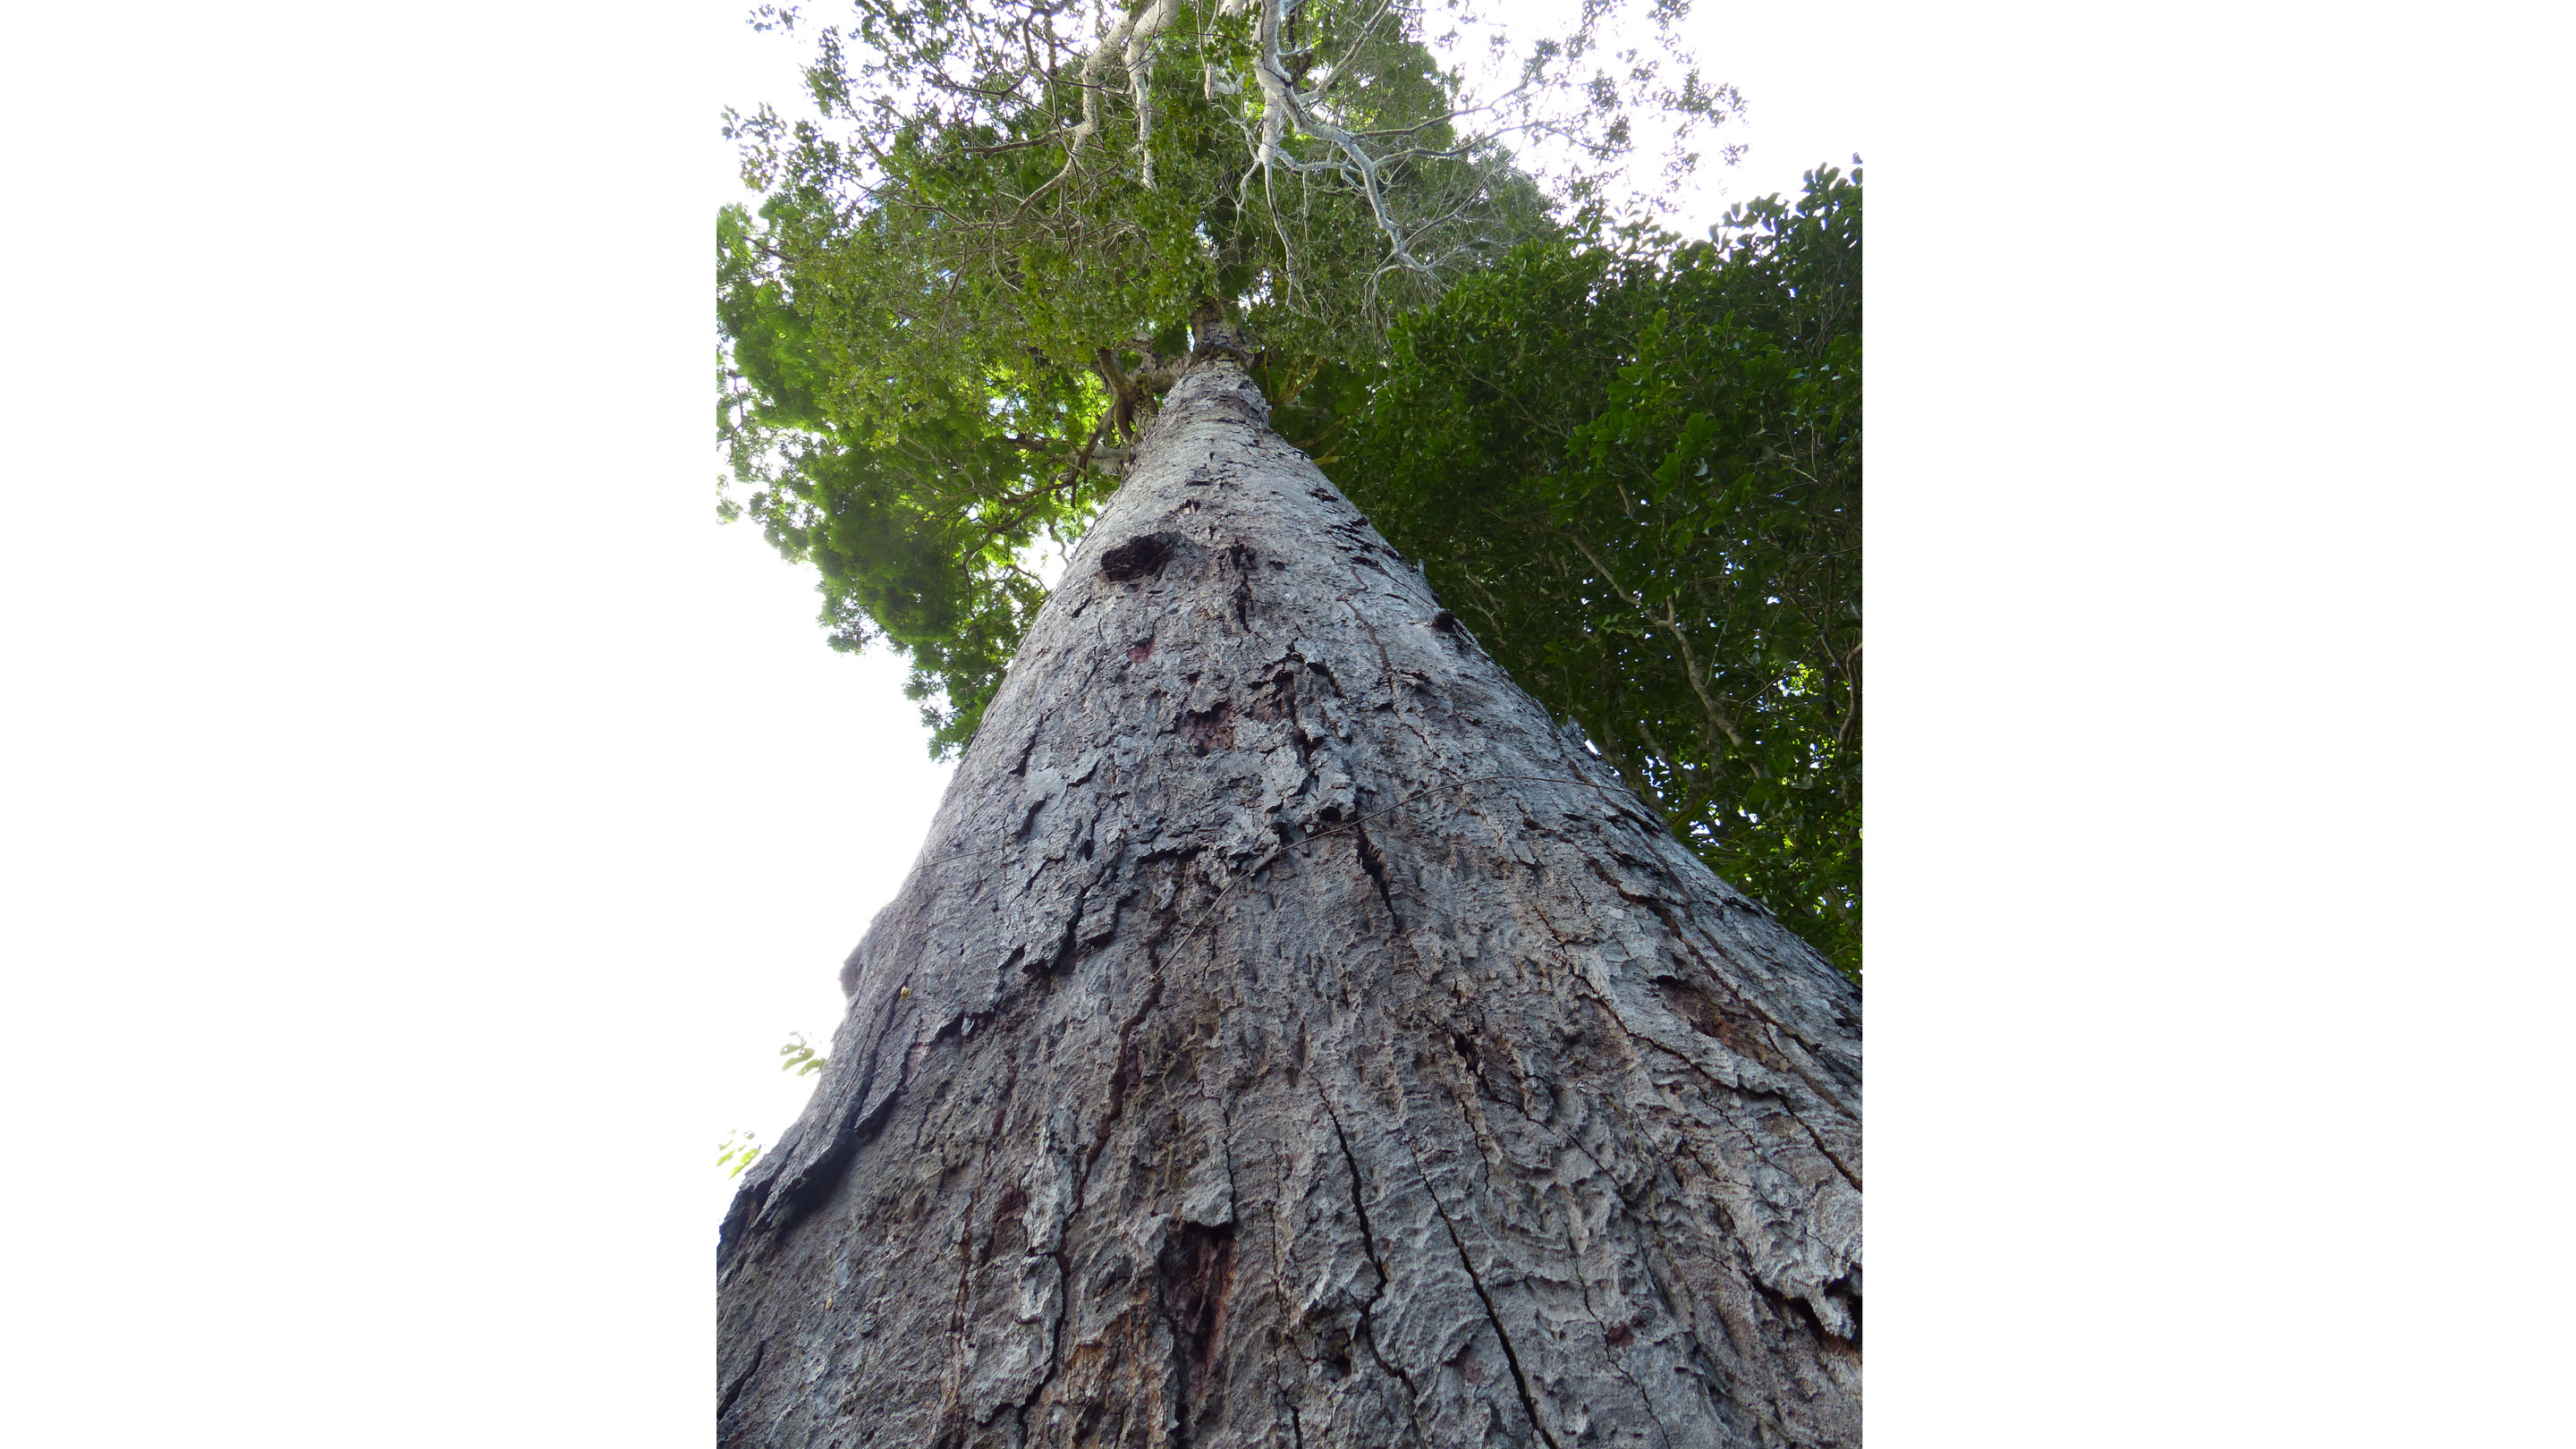 The impressive trunk with its characteristic bark breaking off in large plates (Photo © G.P. Lewis)